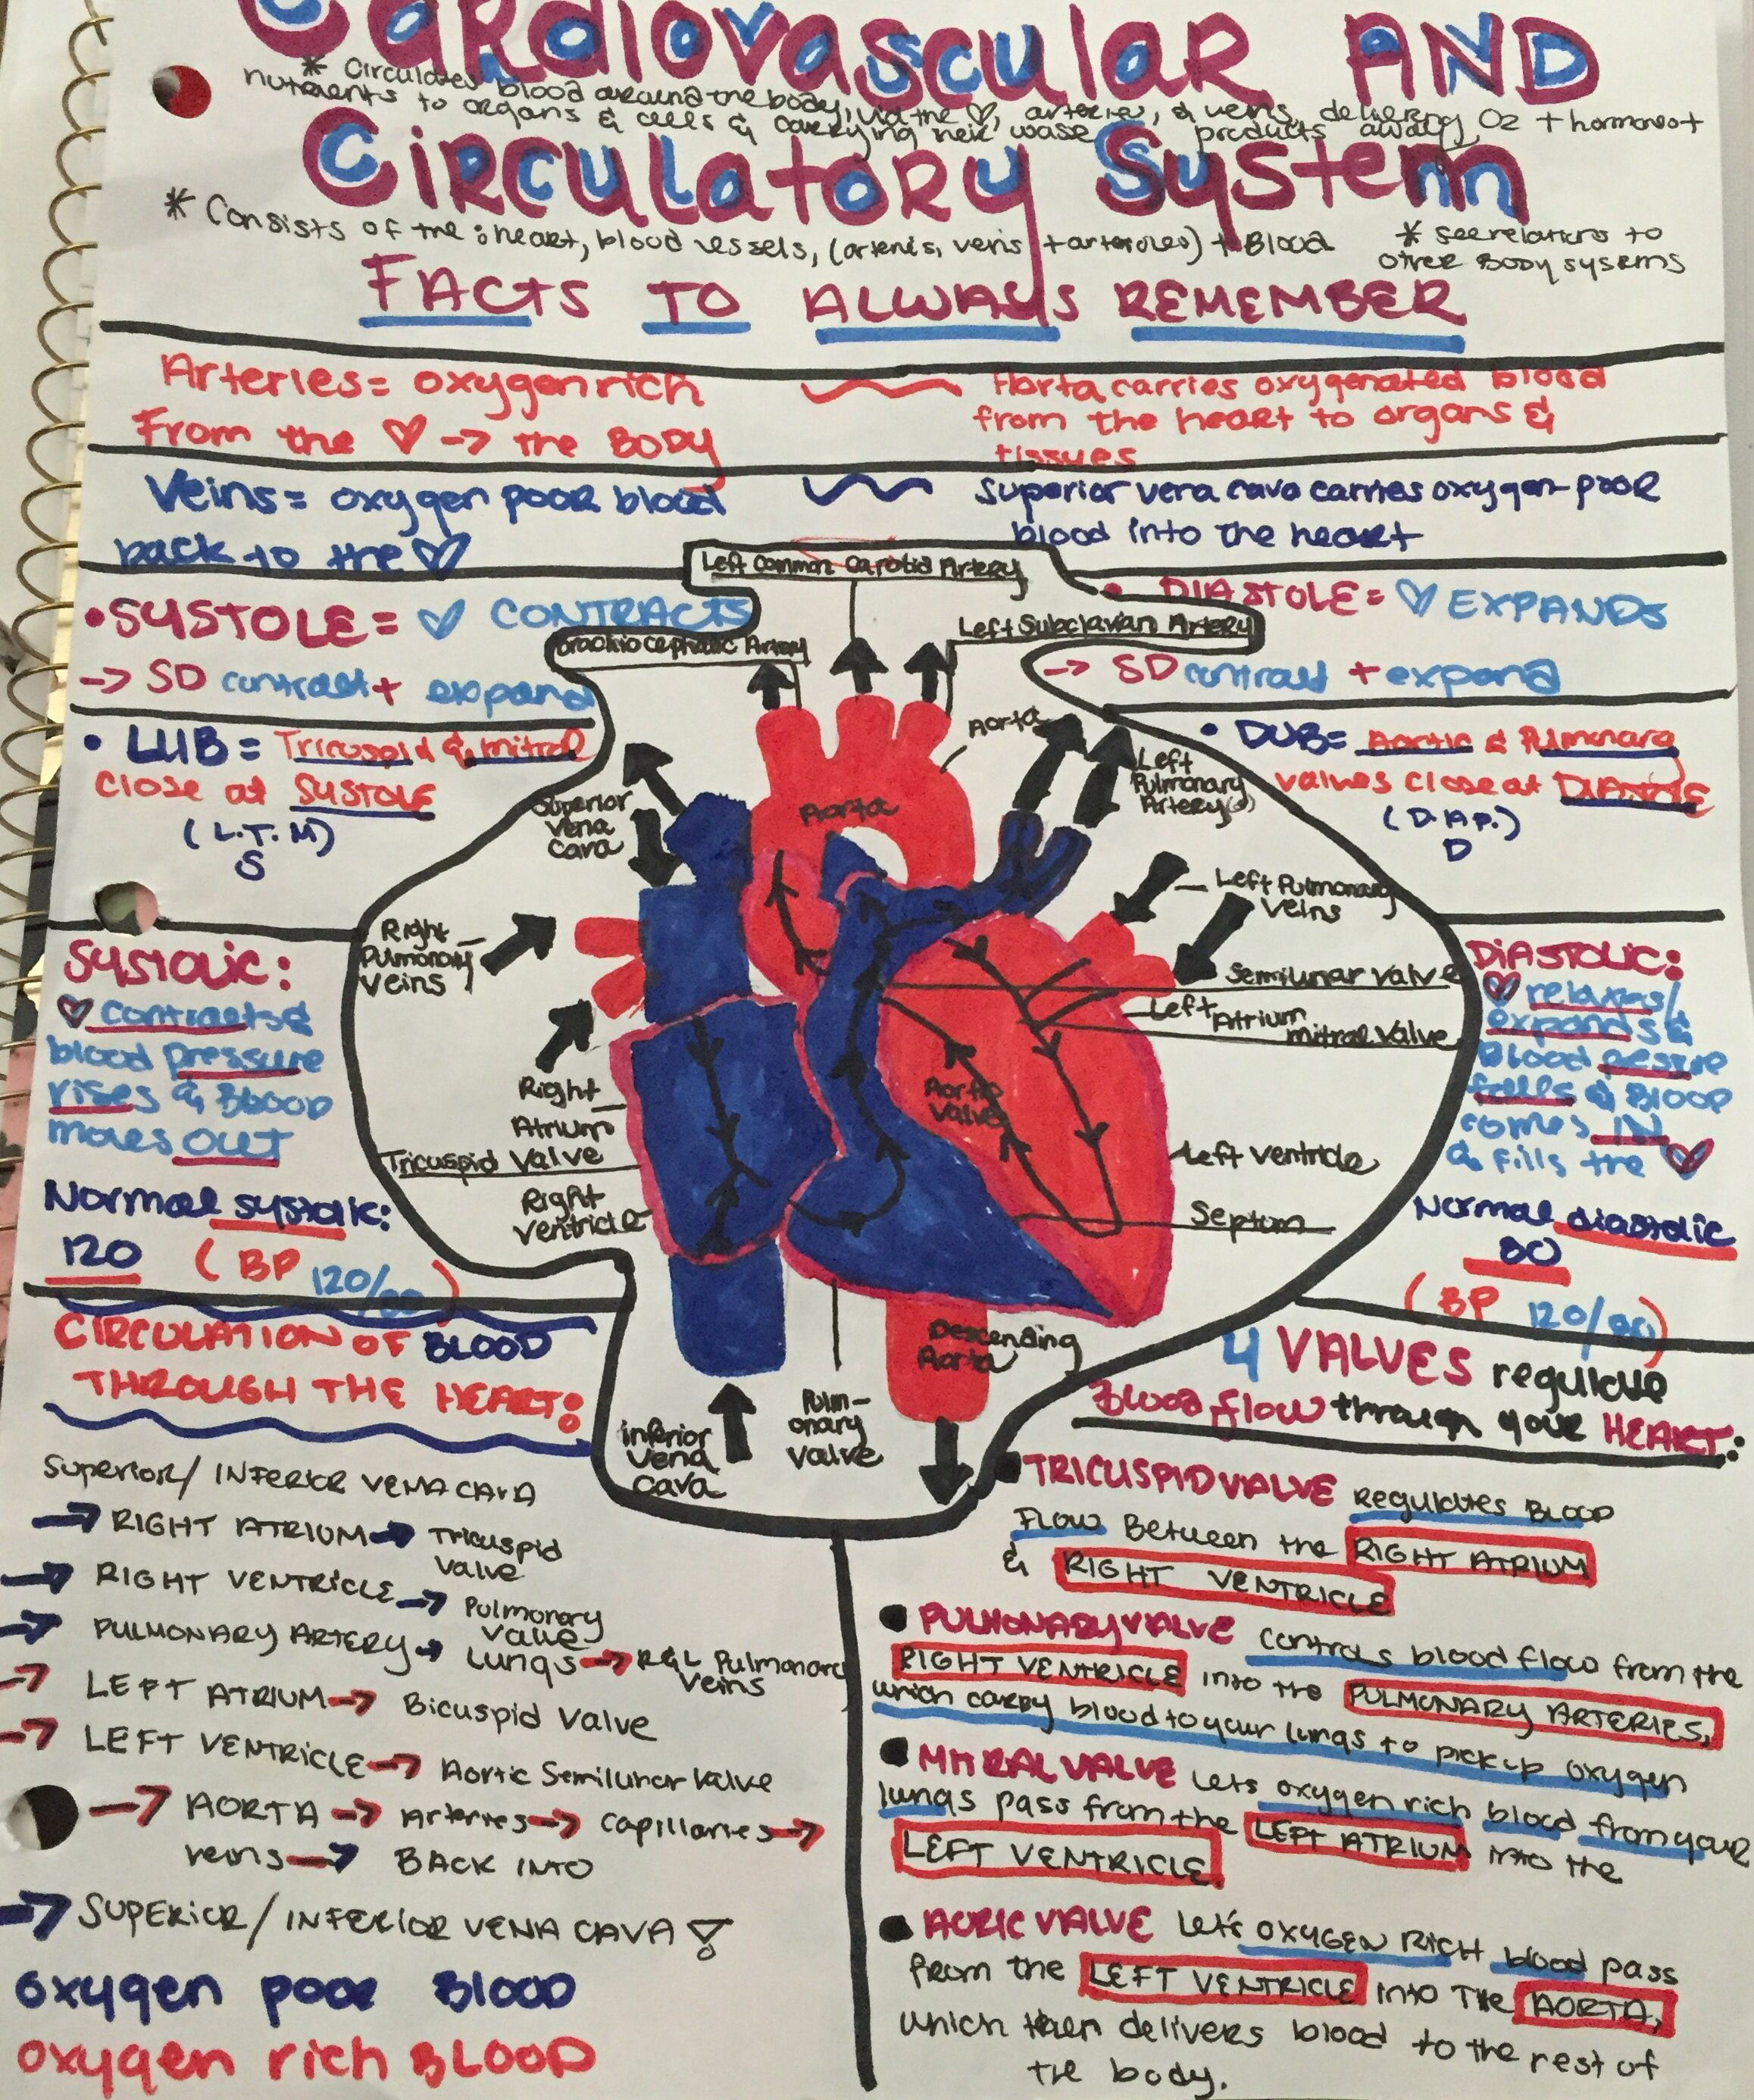 Structures Of The Circulatory System Manual Guide